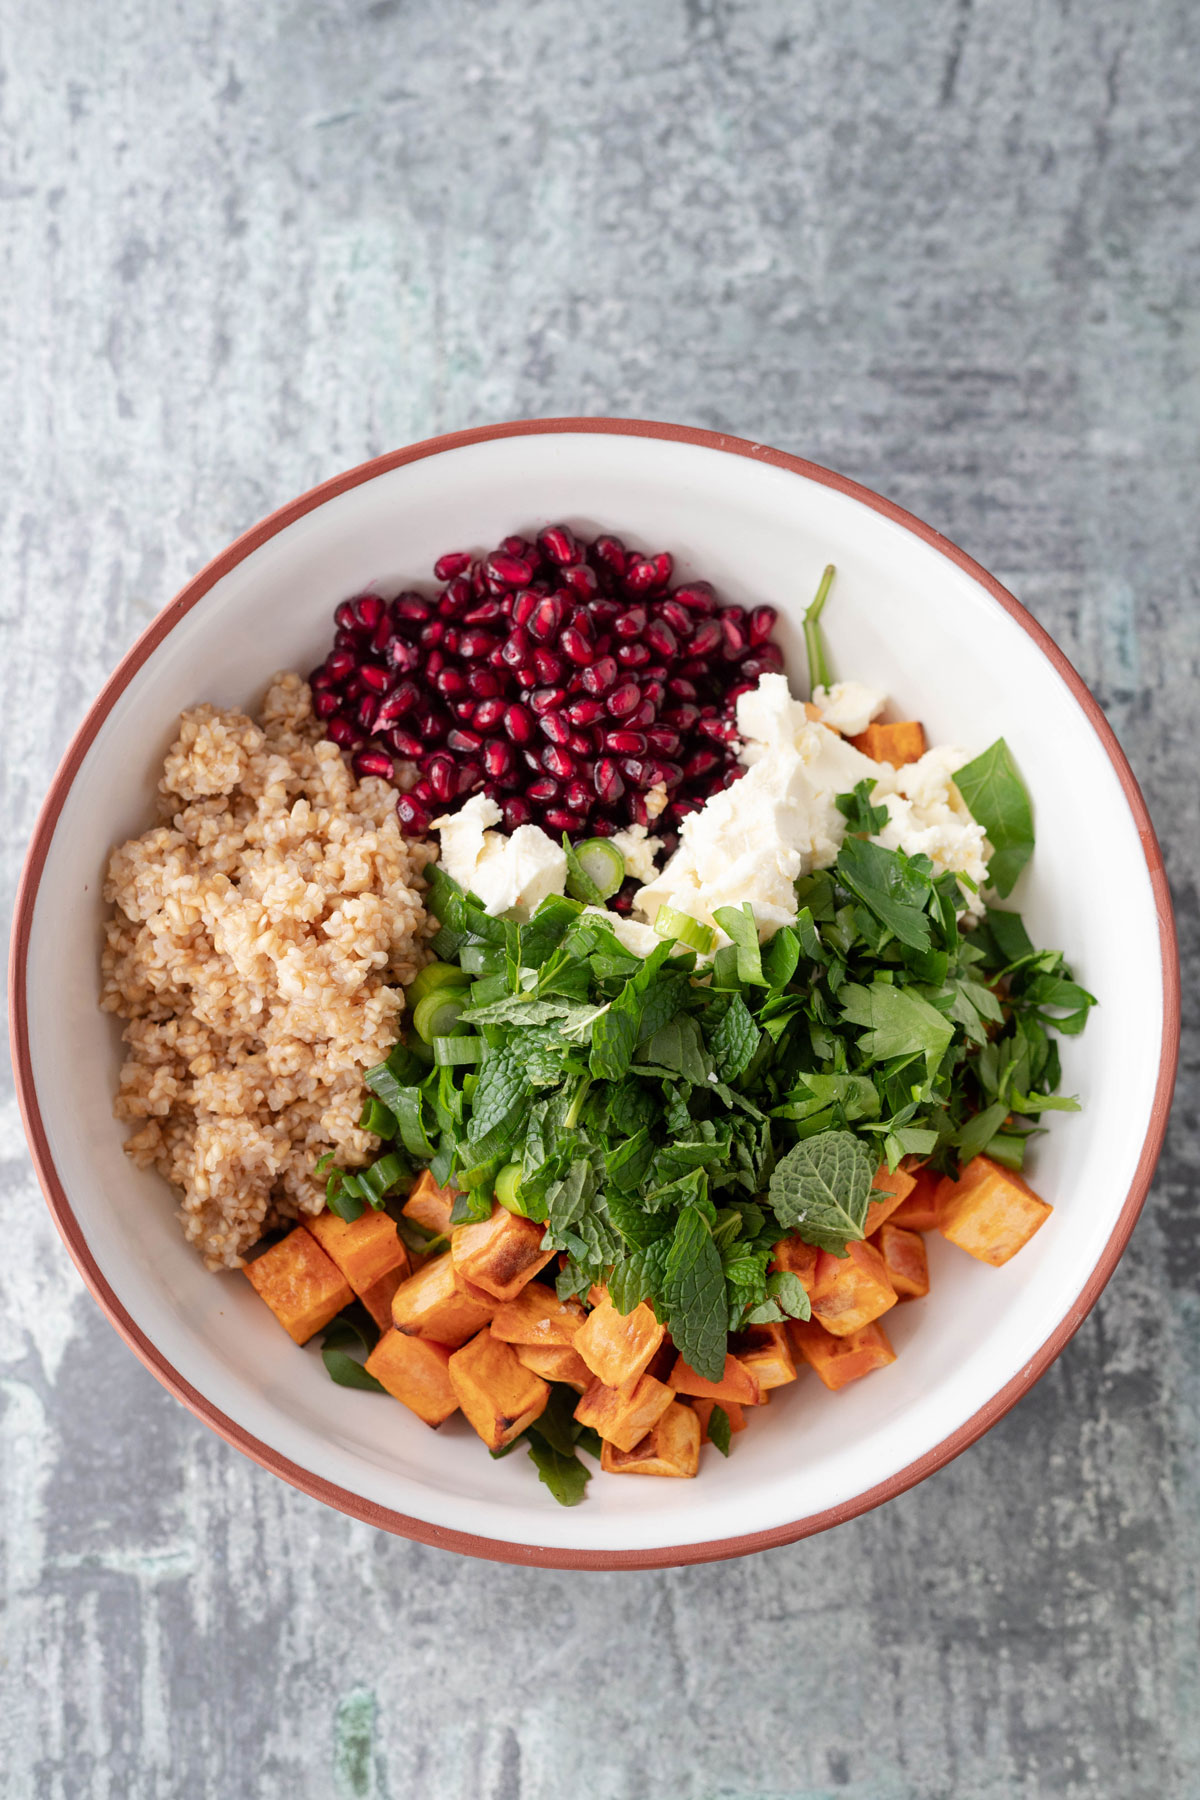 roast sweet potato salad ingredients in a tan and white bowl